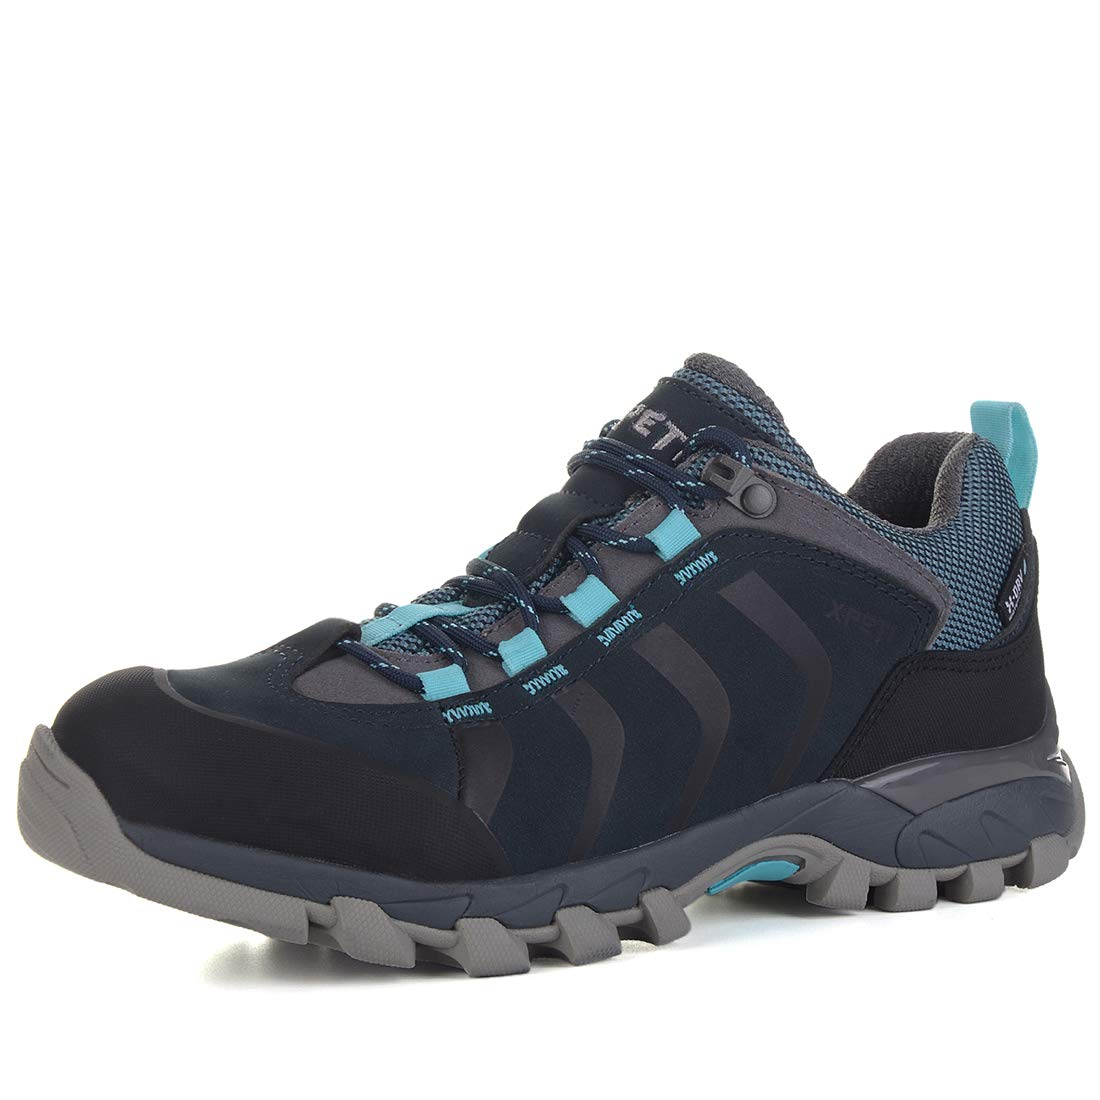 XPETI Women's Vision Water-Resistant Hiking Shoe